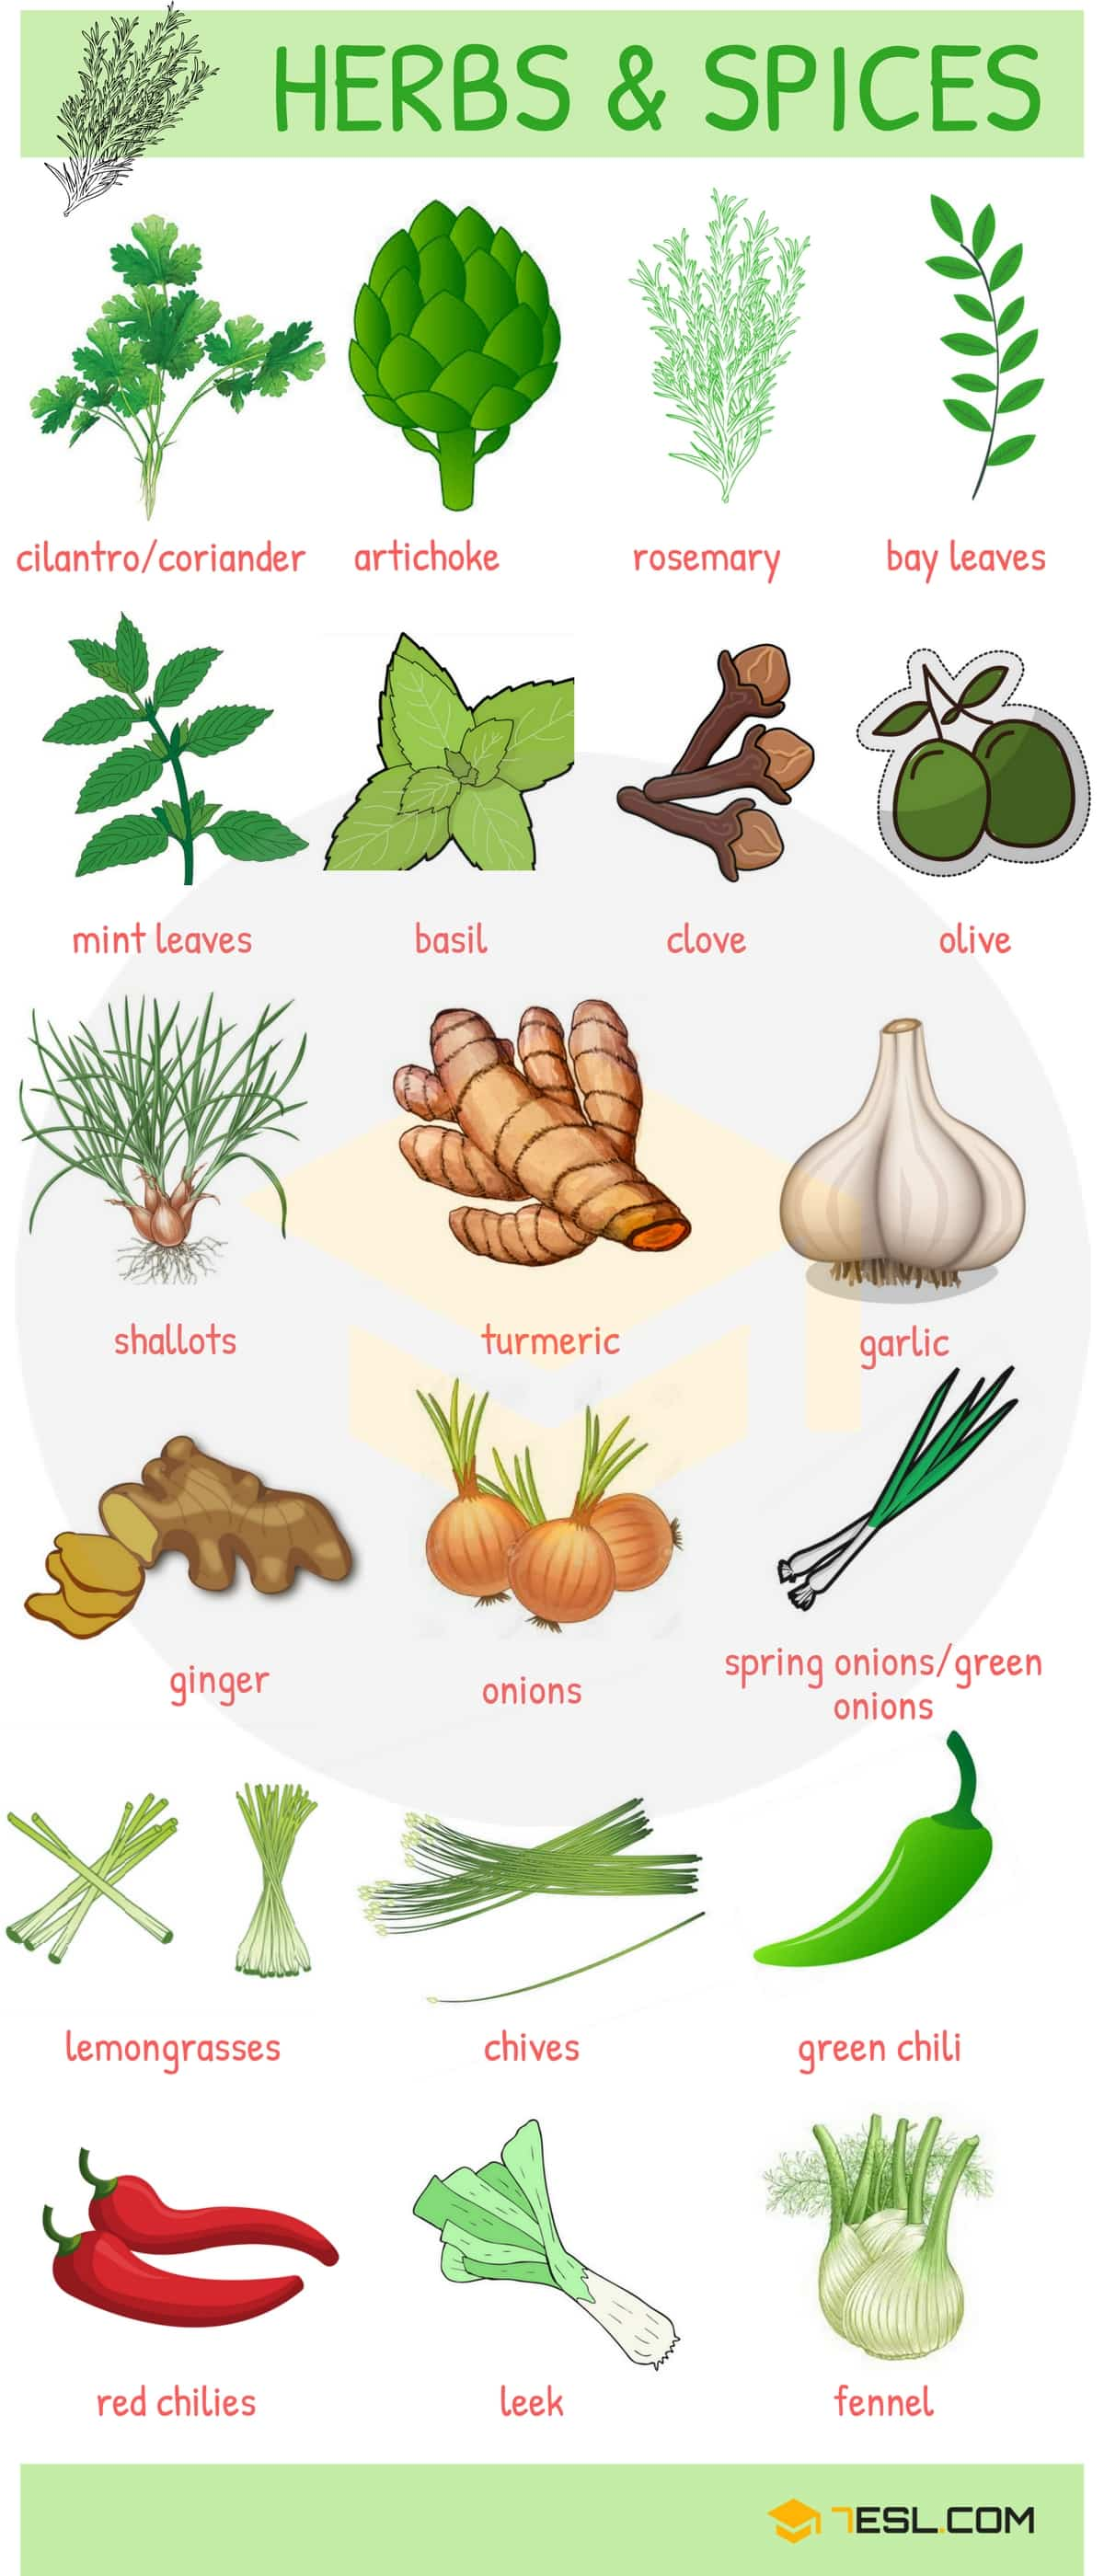 Cuisine Meaning English Fruits And Vegetables List Names And Pictures 7 E S L